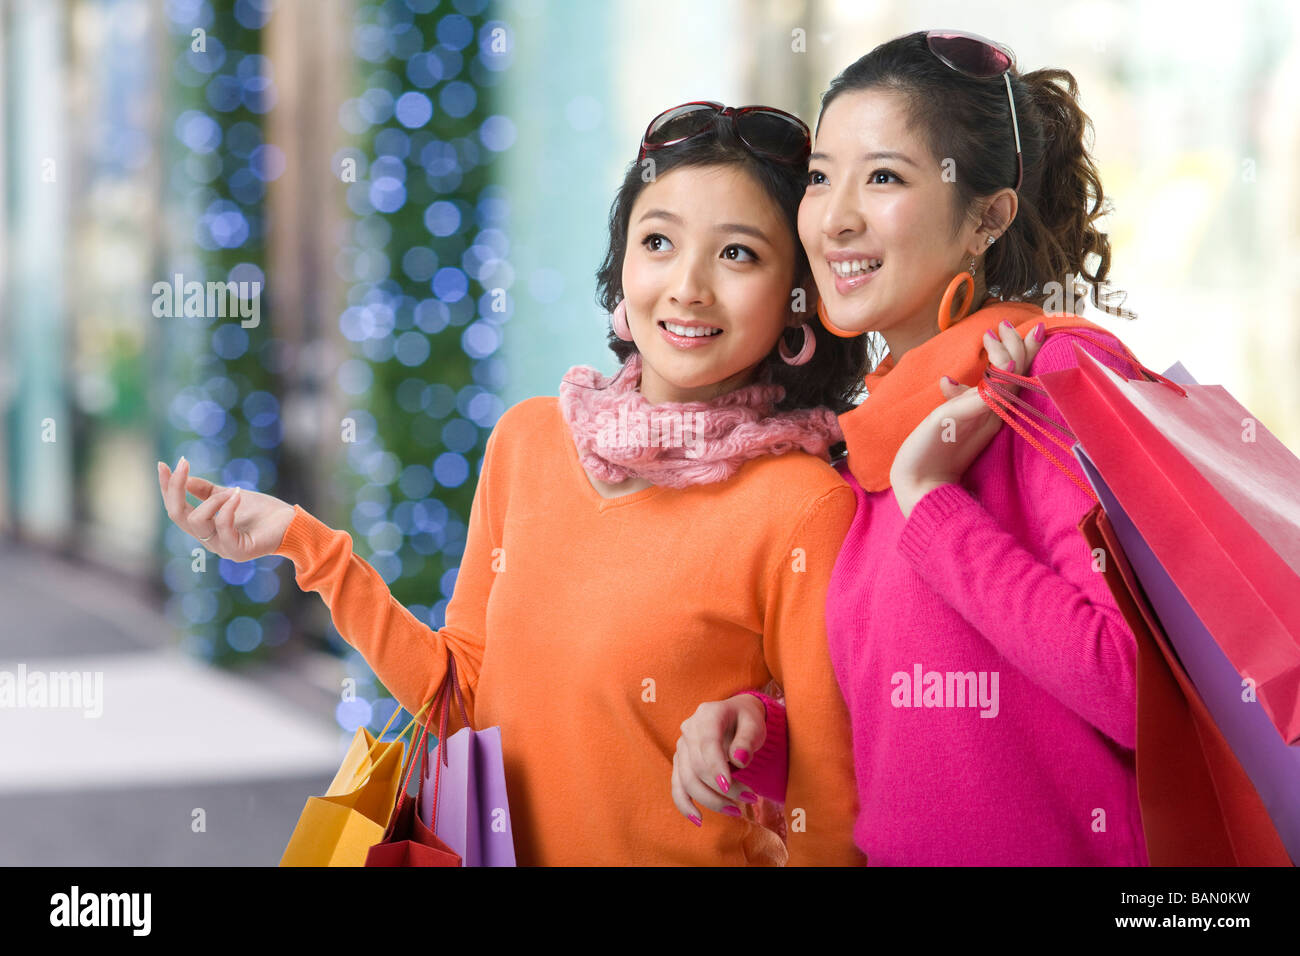 Two young women holding up shopping bags - Stock Image